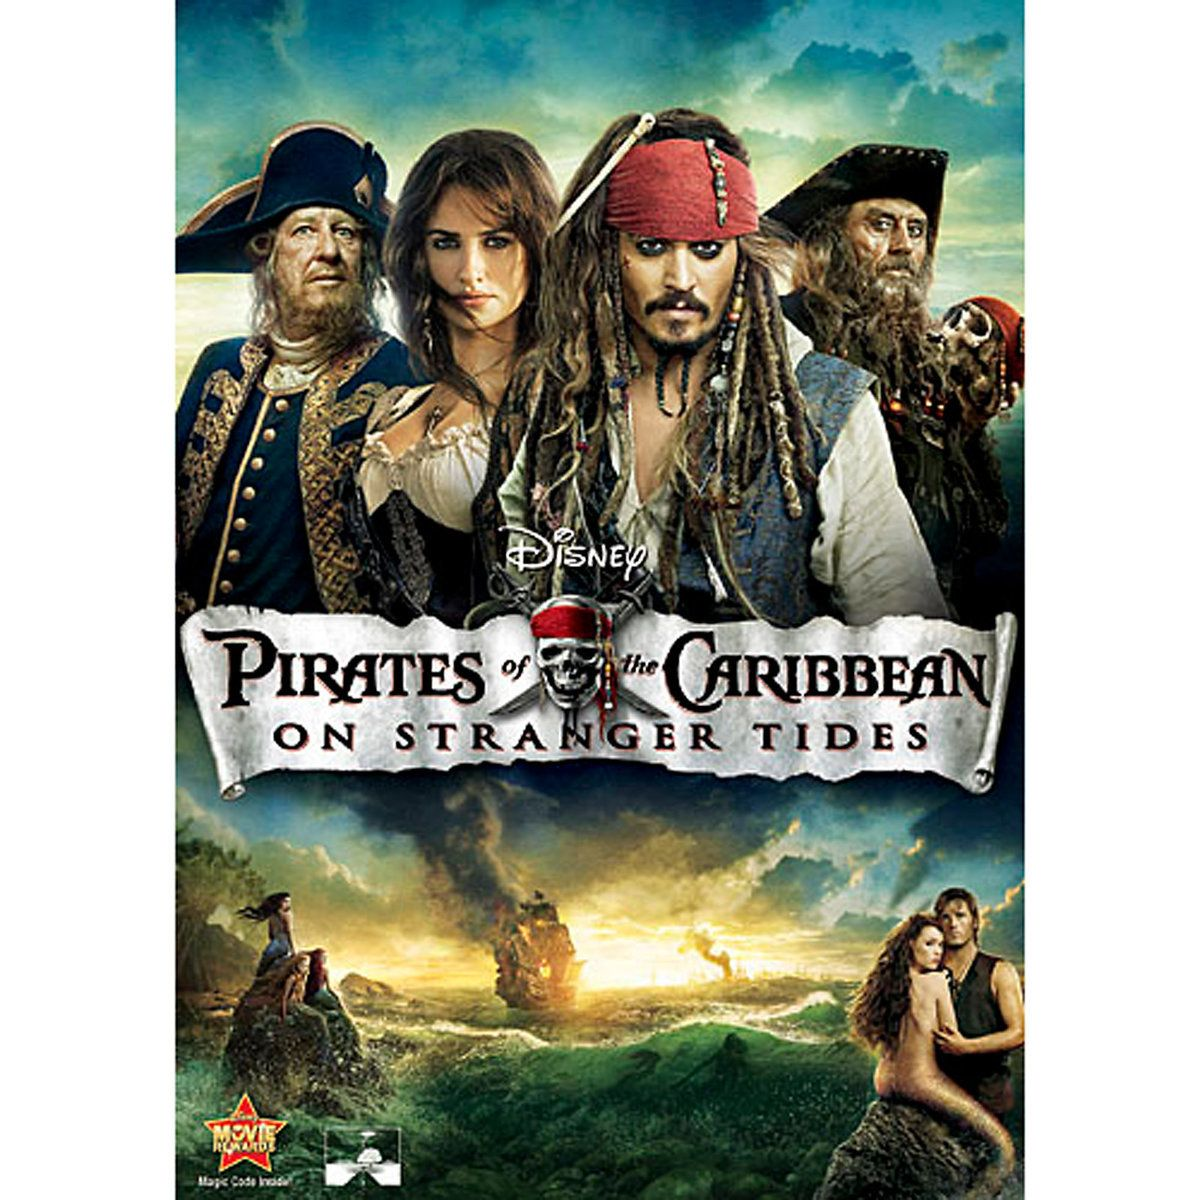 Pirates of the Caribbean: On Stranger Tides DVD in 2019 | M